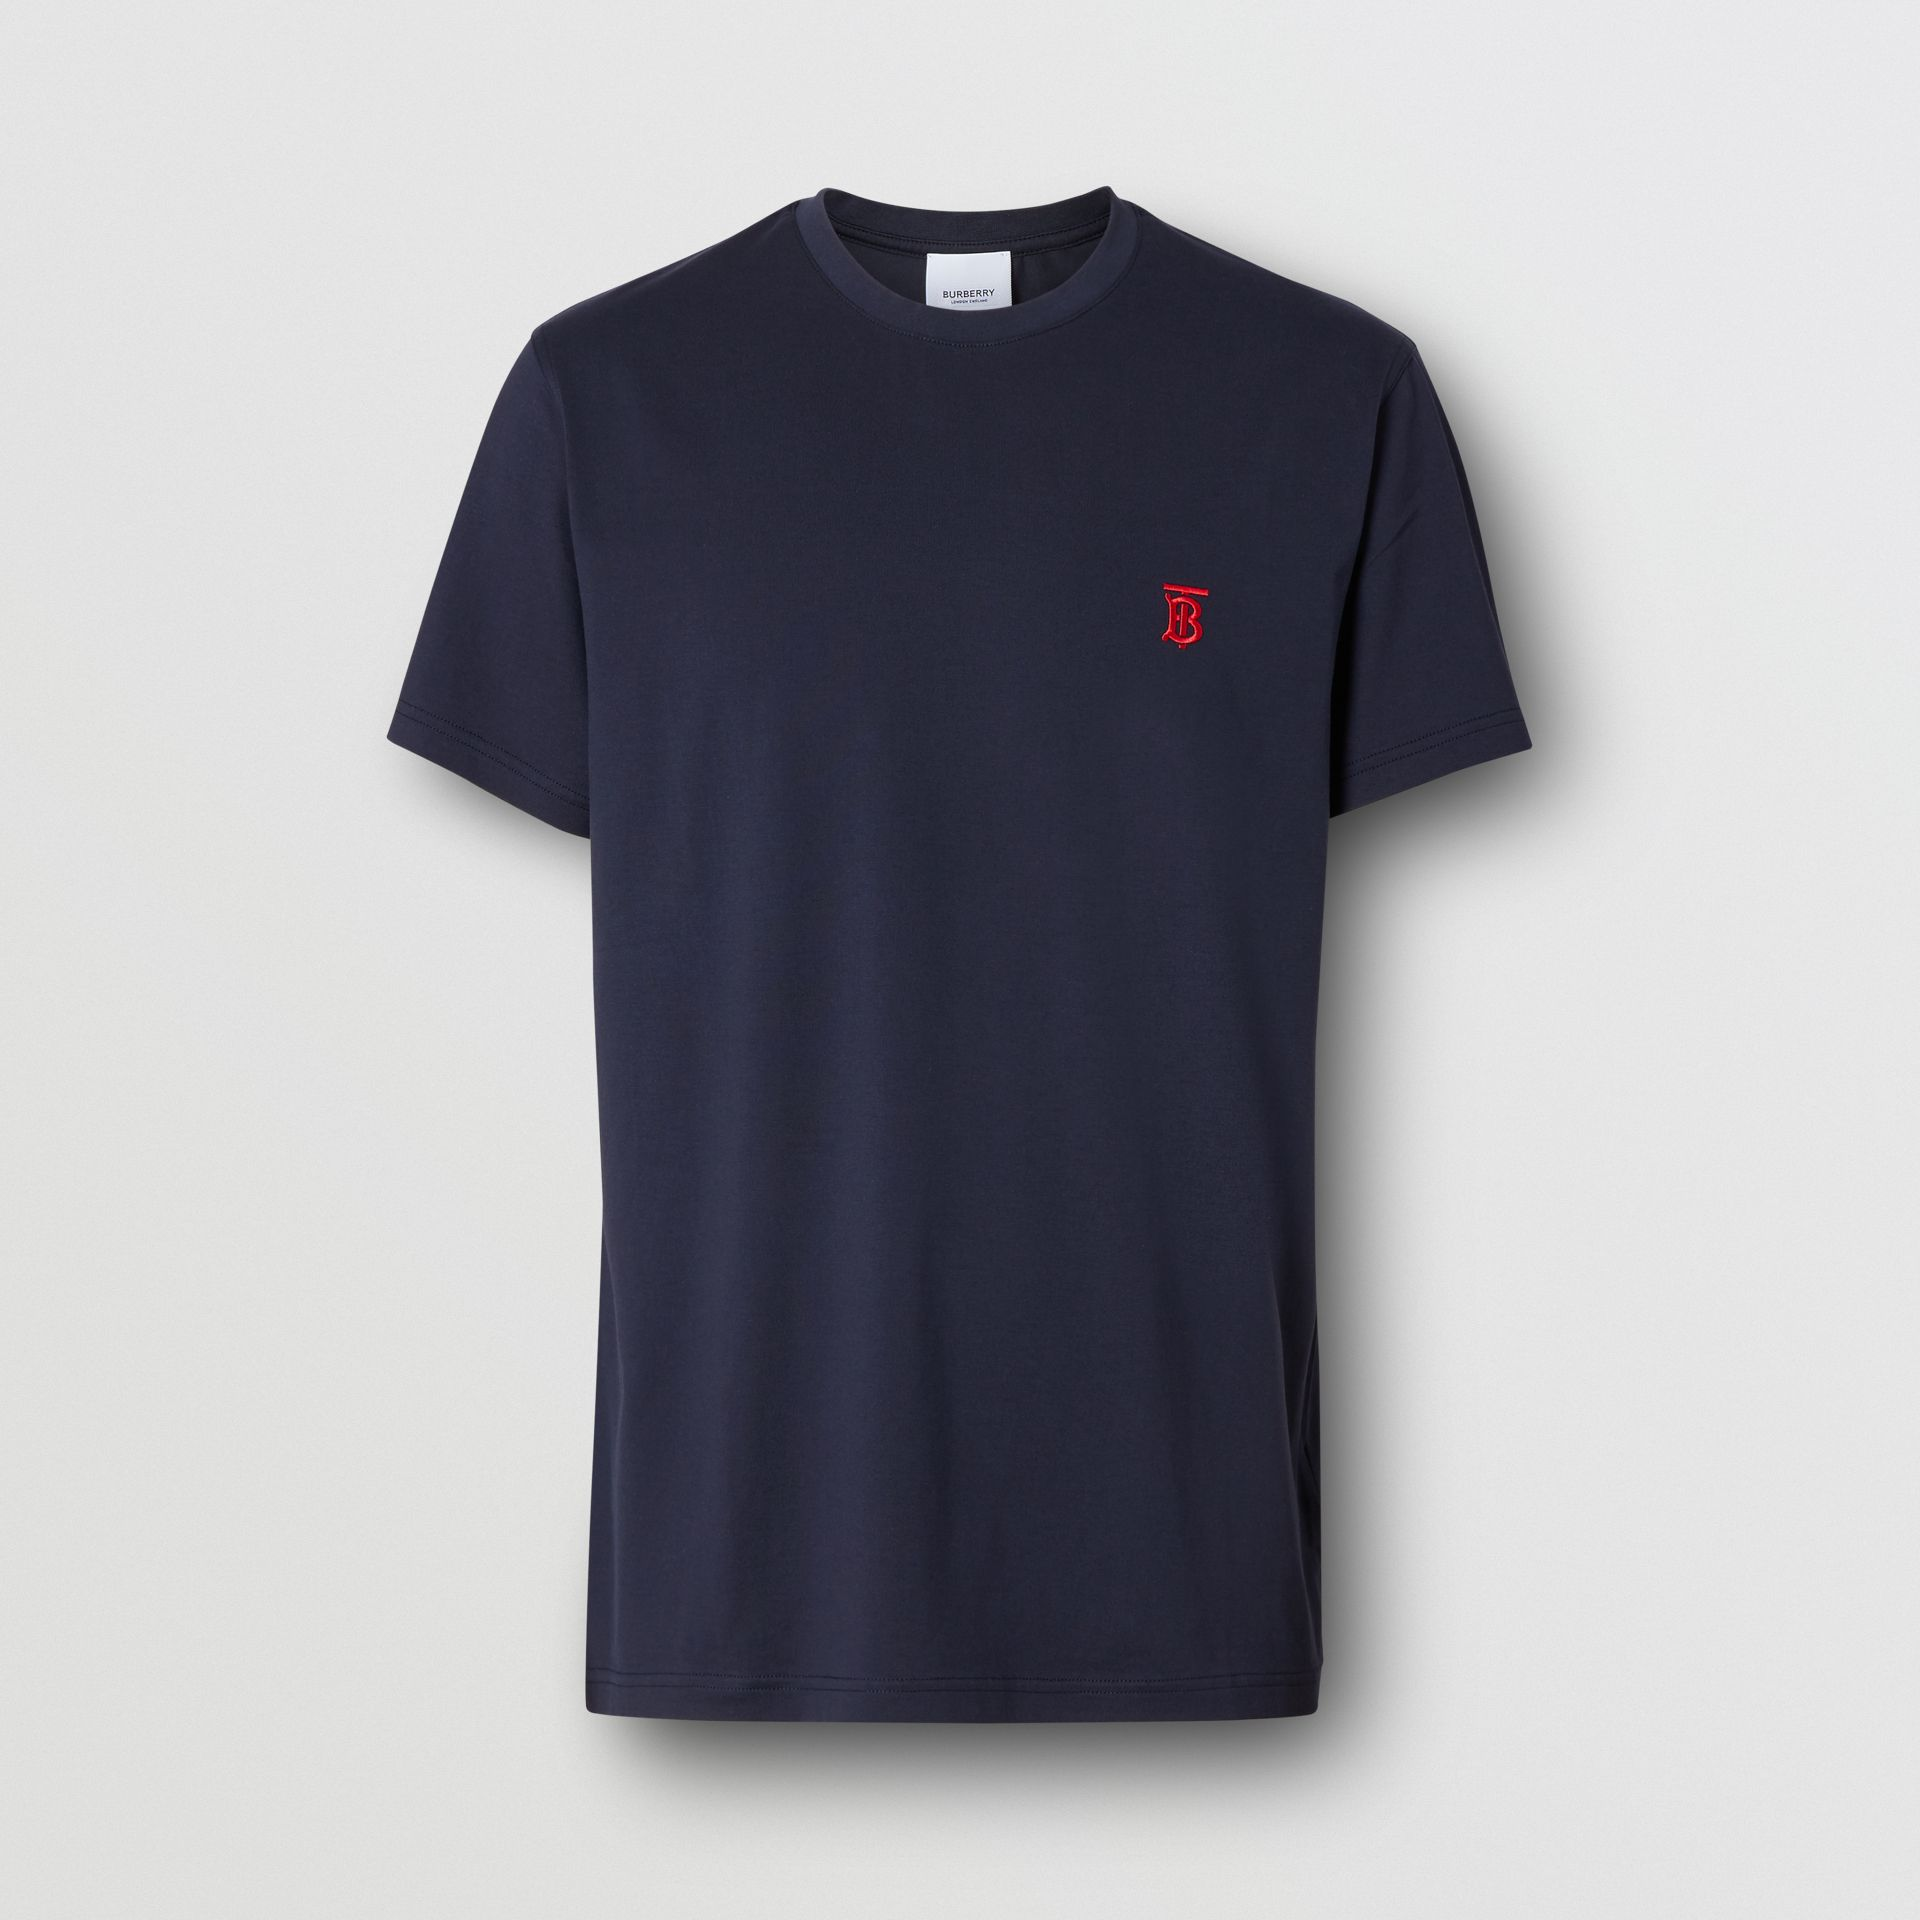 Monogram Motif Cotton T-shirt in Navy - Men | Burberry - gallery image 3